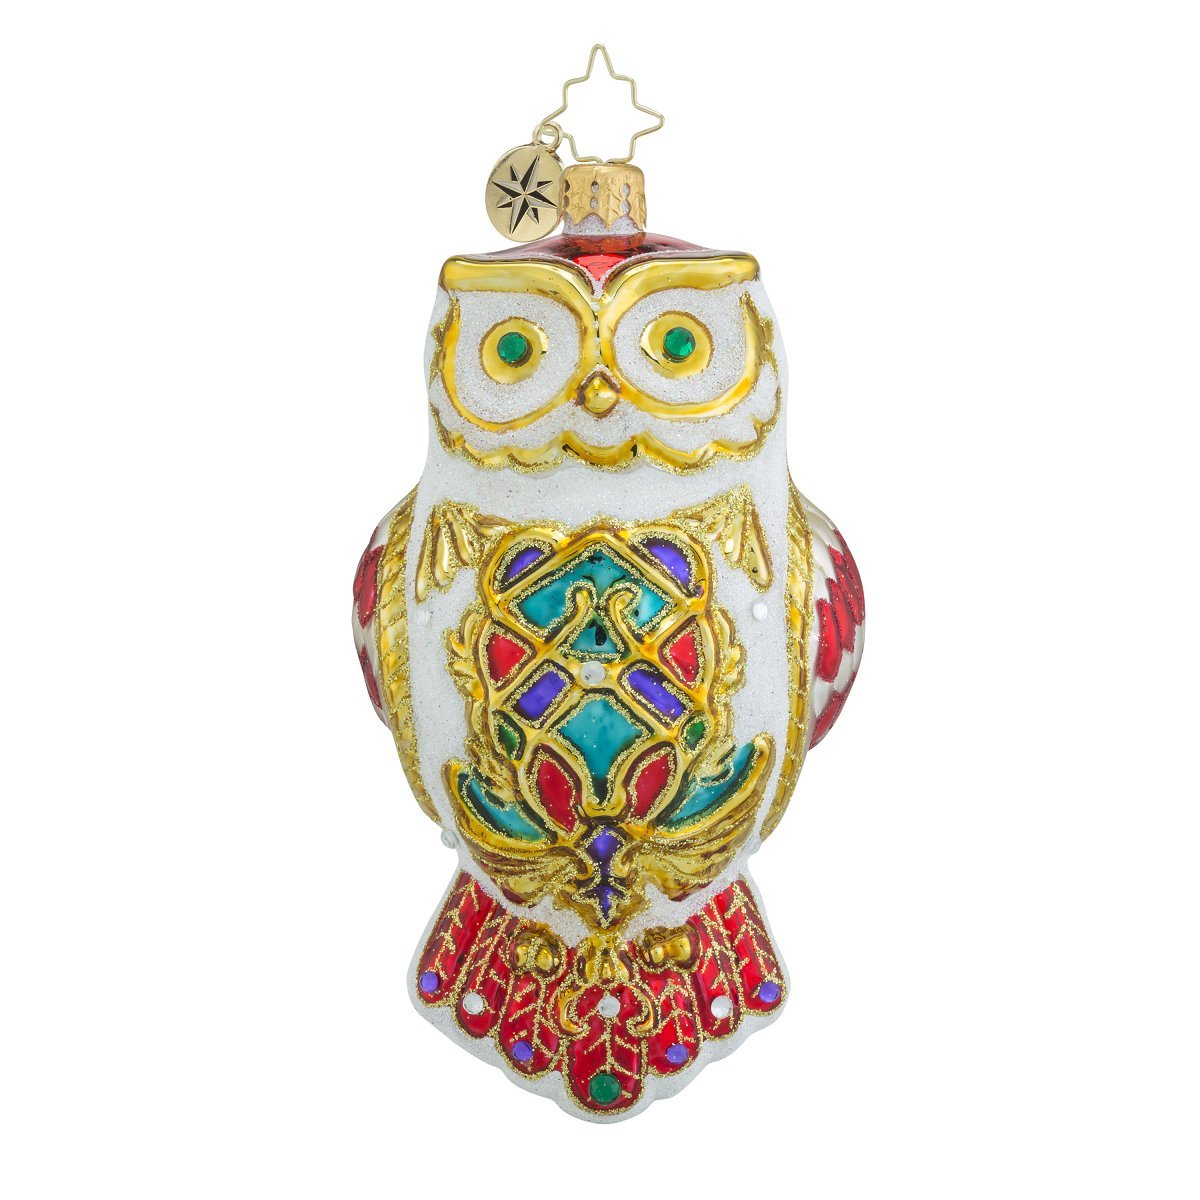 Christopher Radko Owl Fly Away Glass Christmas Ornament - 5.5''h.